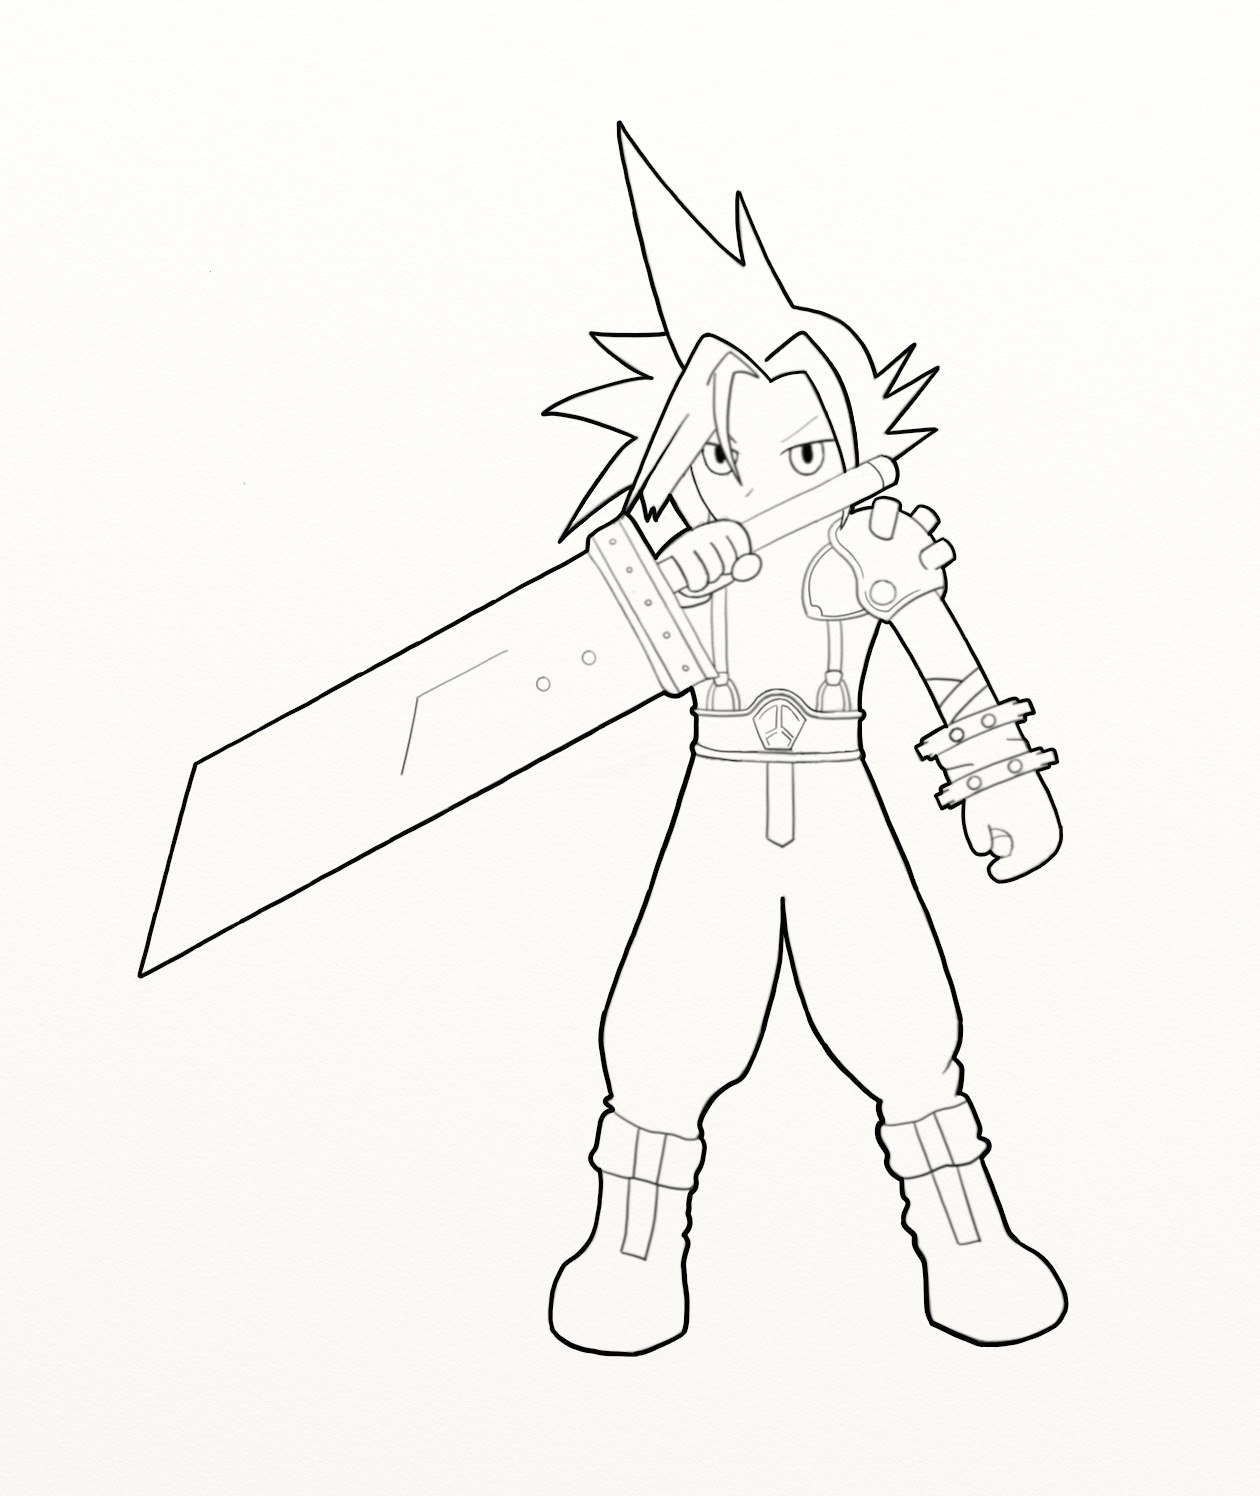 Final Fantasy Coloring Pages ordering Download Of Final Fantasy Moogle Coloring Pages Keywords and Pictures Download